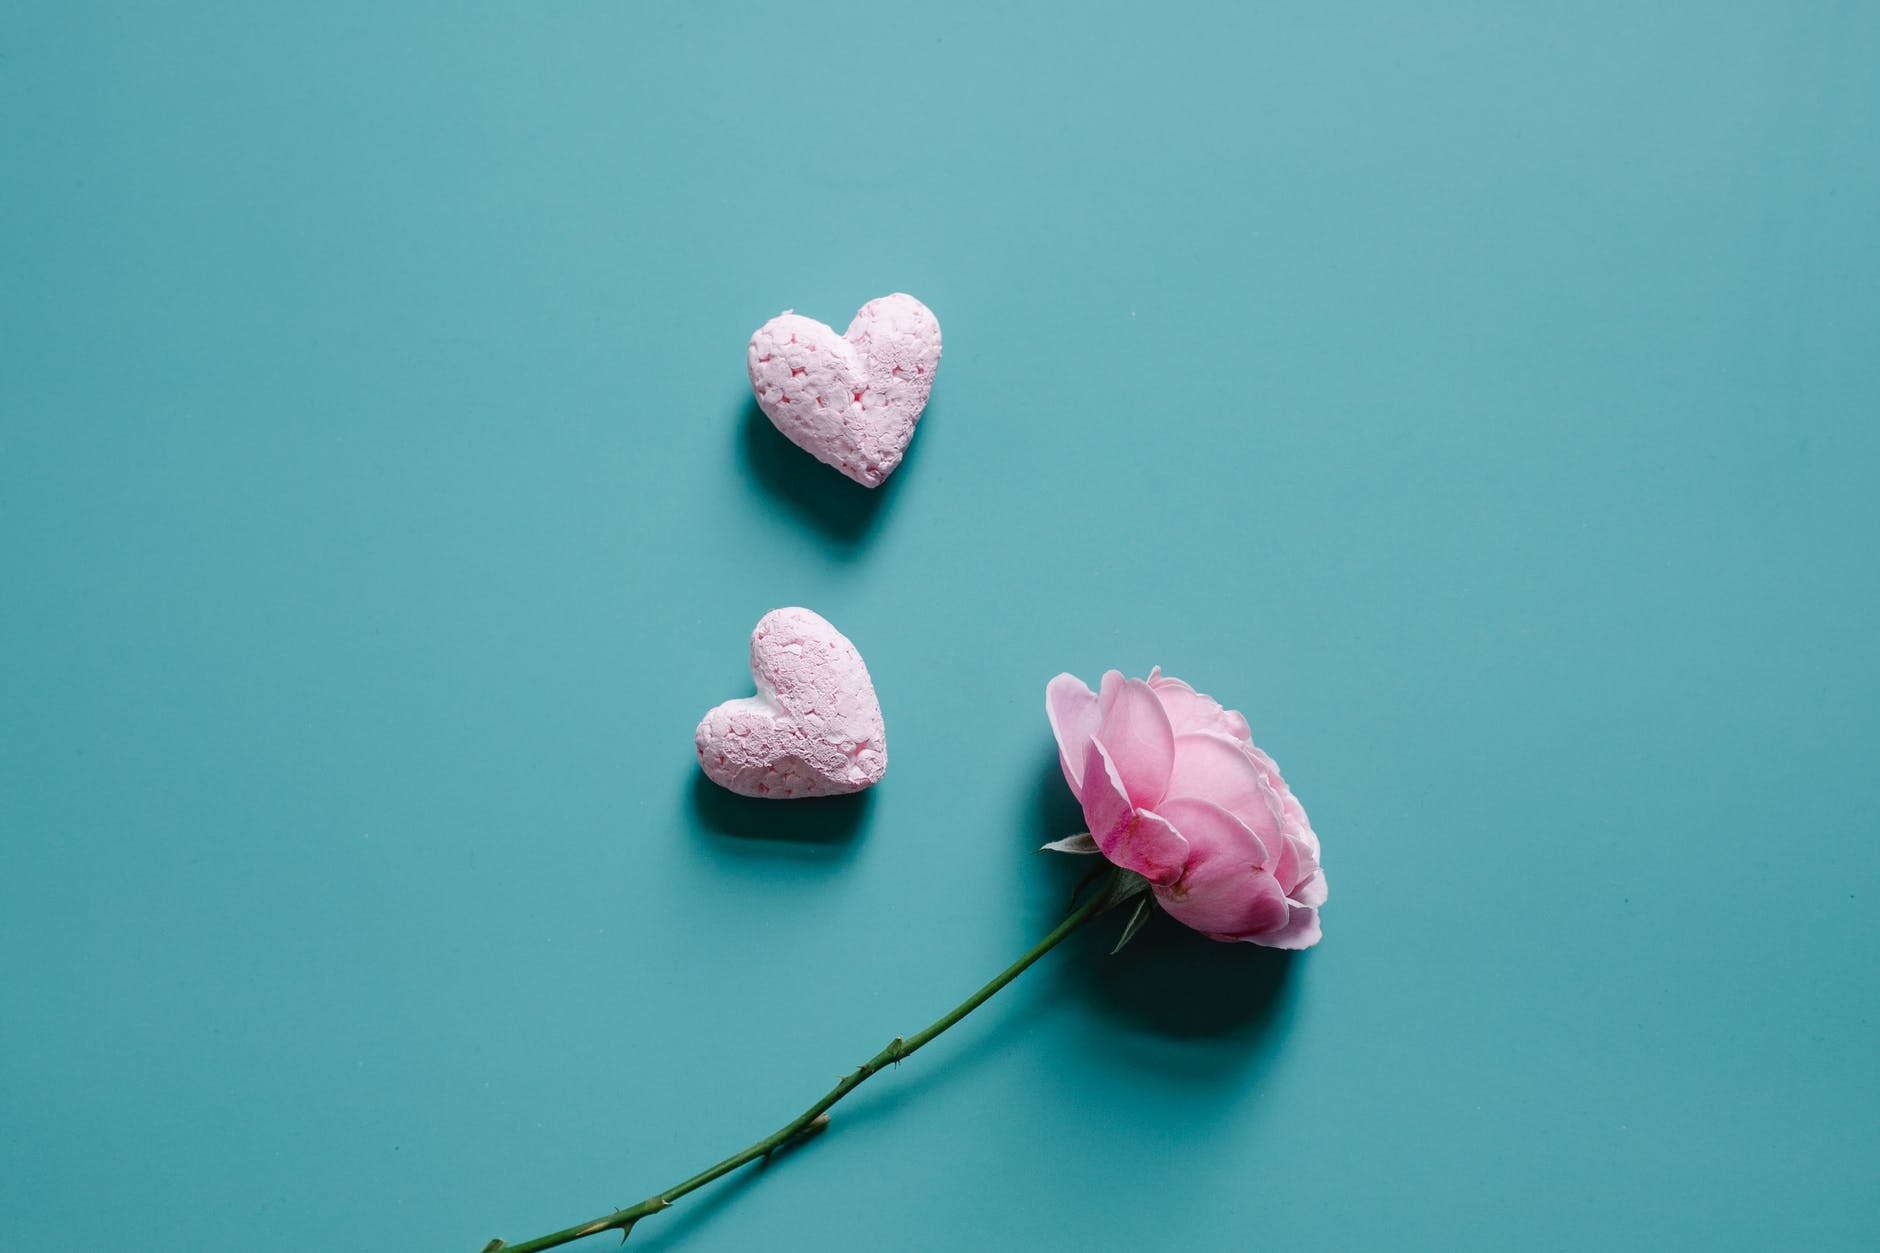 heart shaped decorations and flower on vivid surface